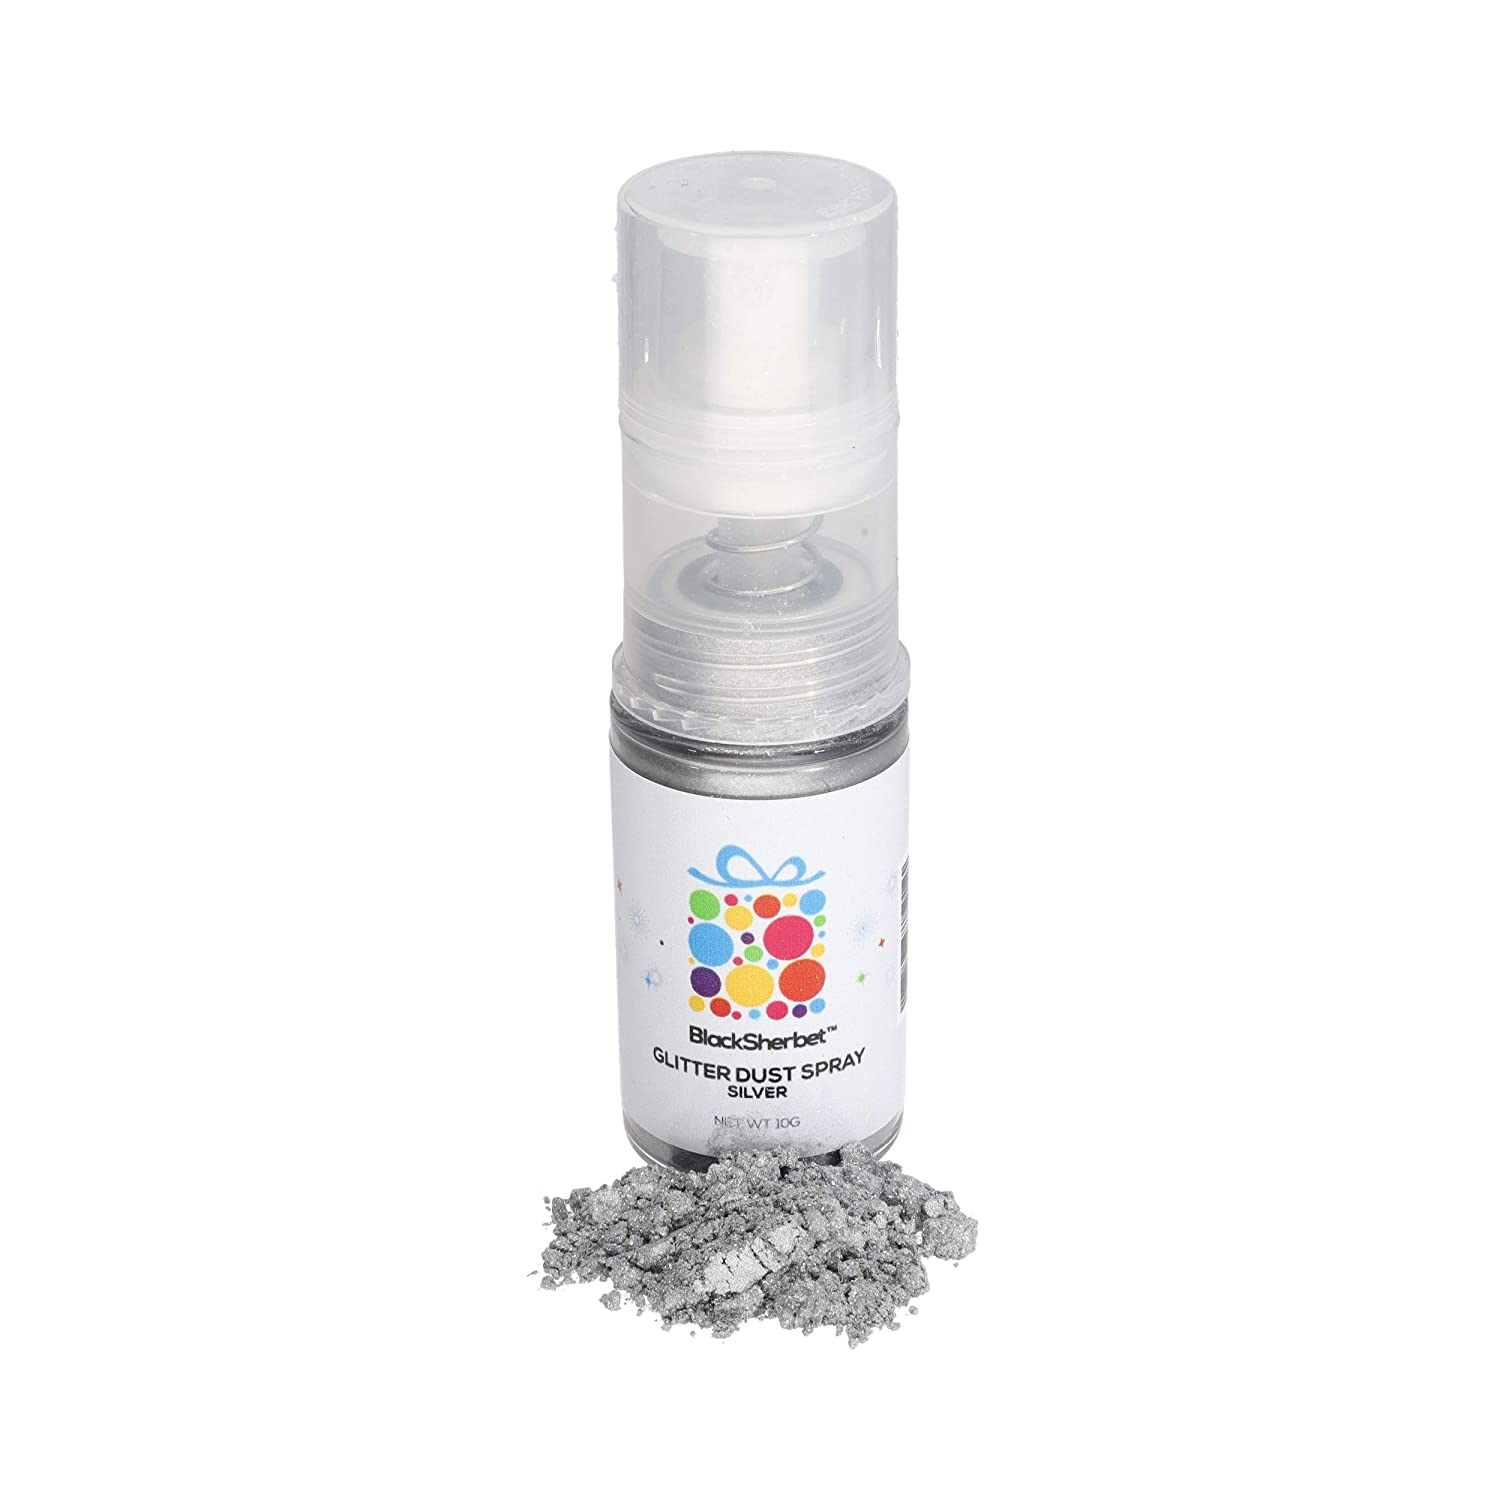 Edible Glitter Dust Spray, (10g) | 100% Edible | Food Grade | Cakes, Cupcakes, Decorating, Cake Pops, Cookies, Drinks, Gourmet Desserts, Chocolate. (Silver)